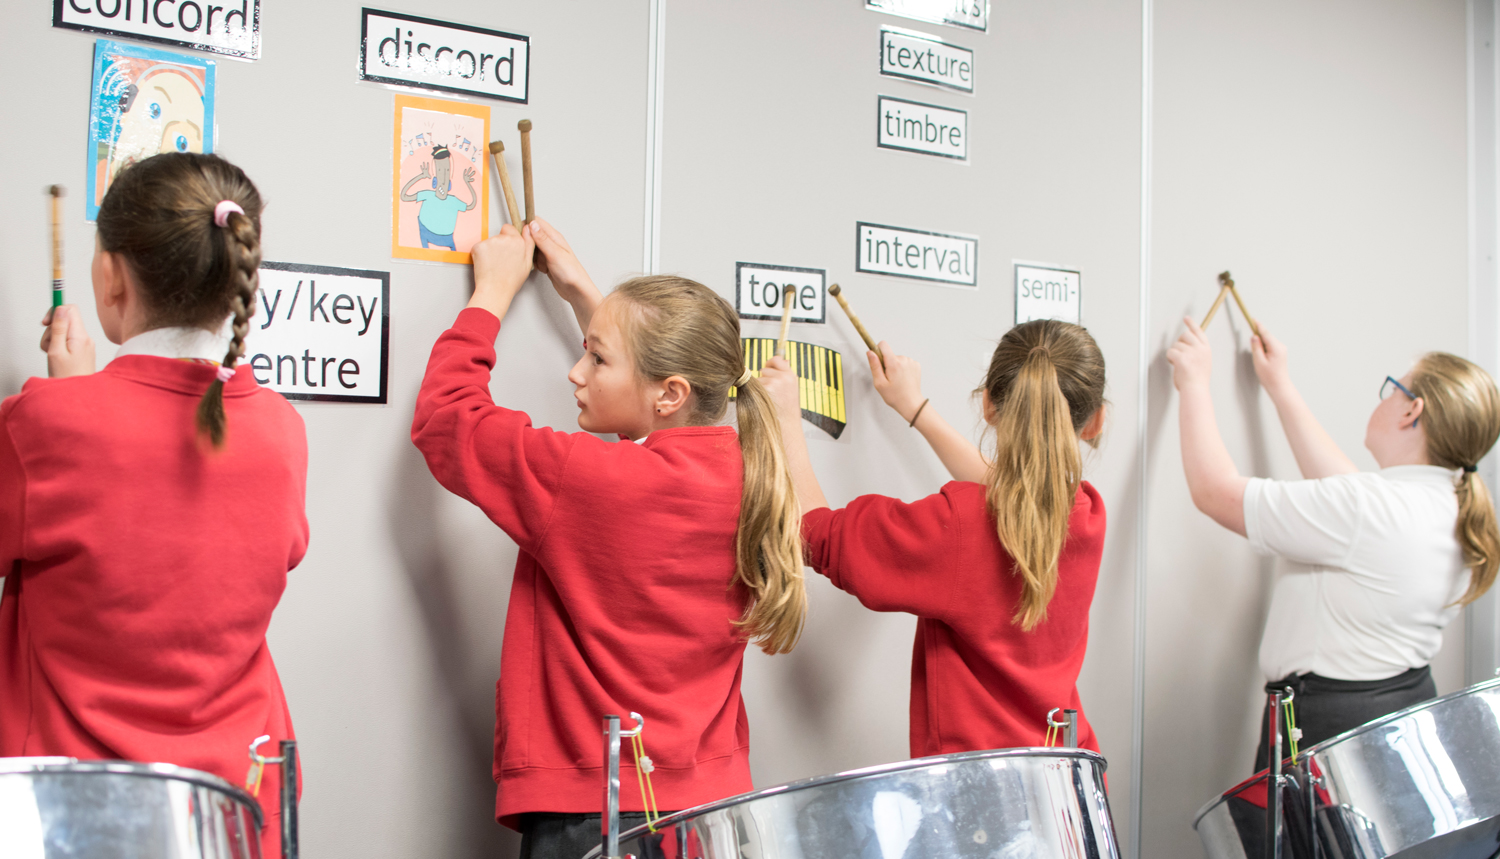 39495 ways music education could be improved in primary schools